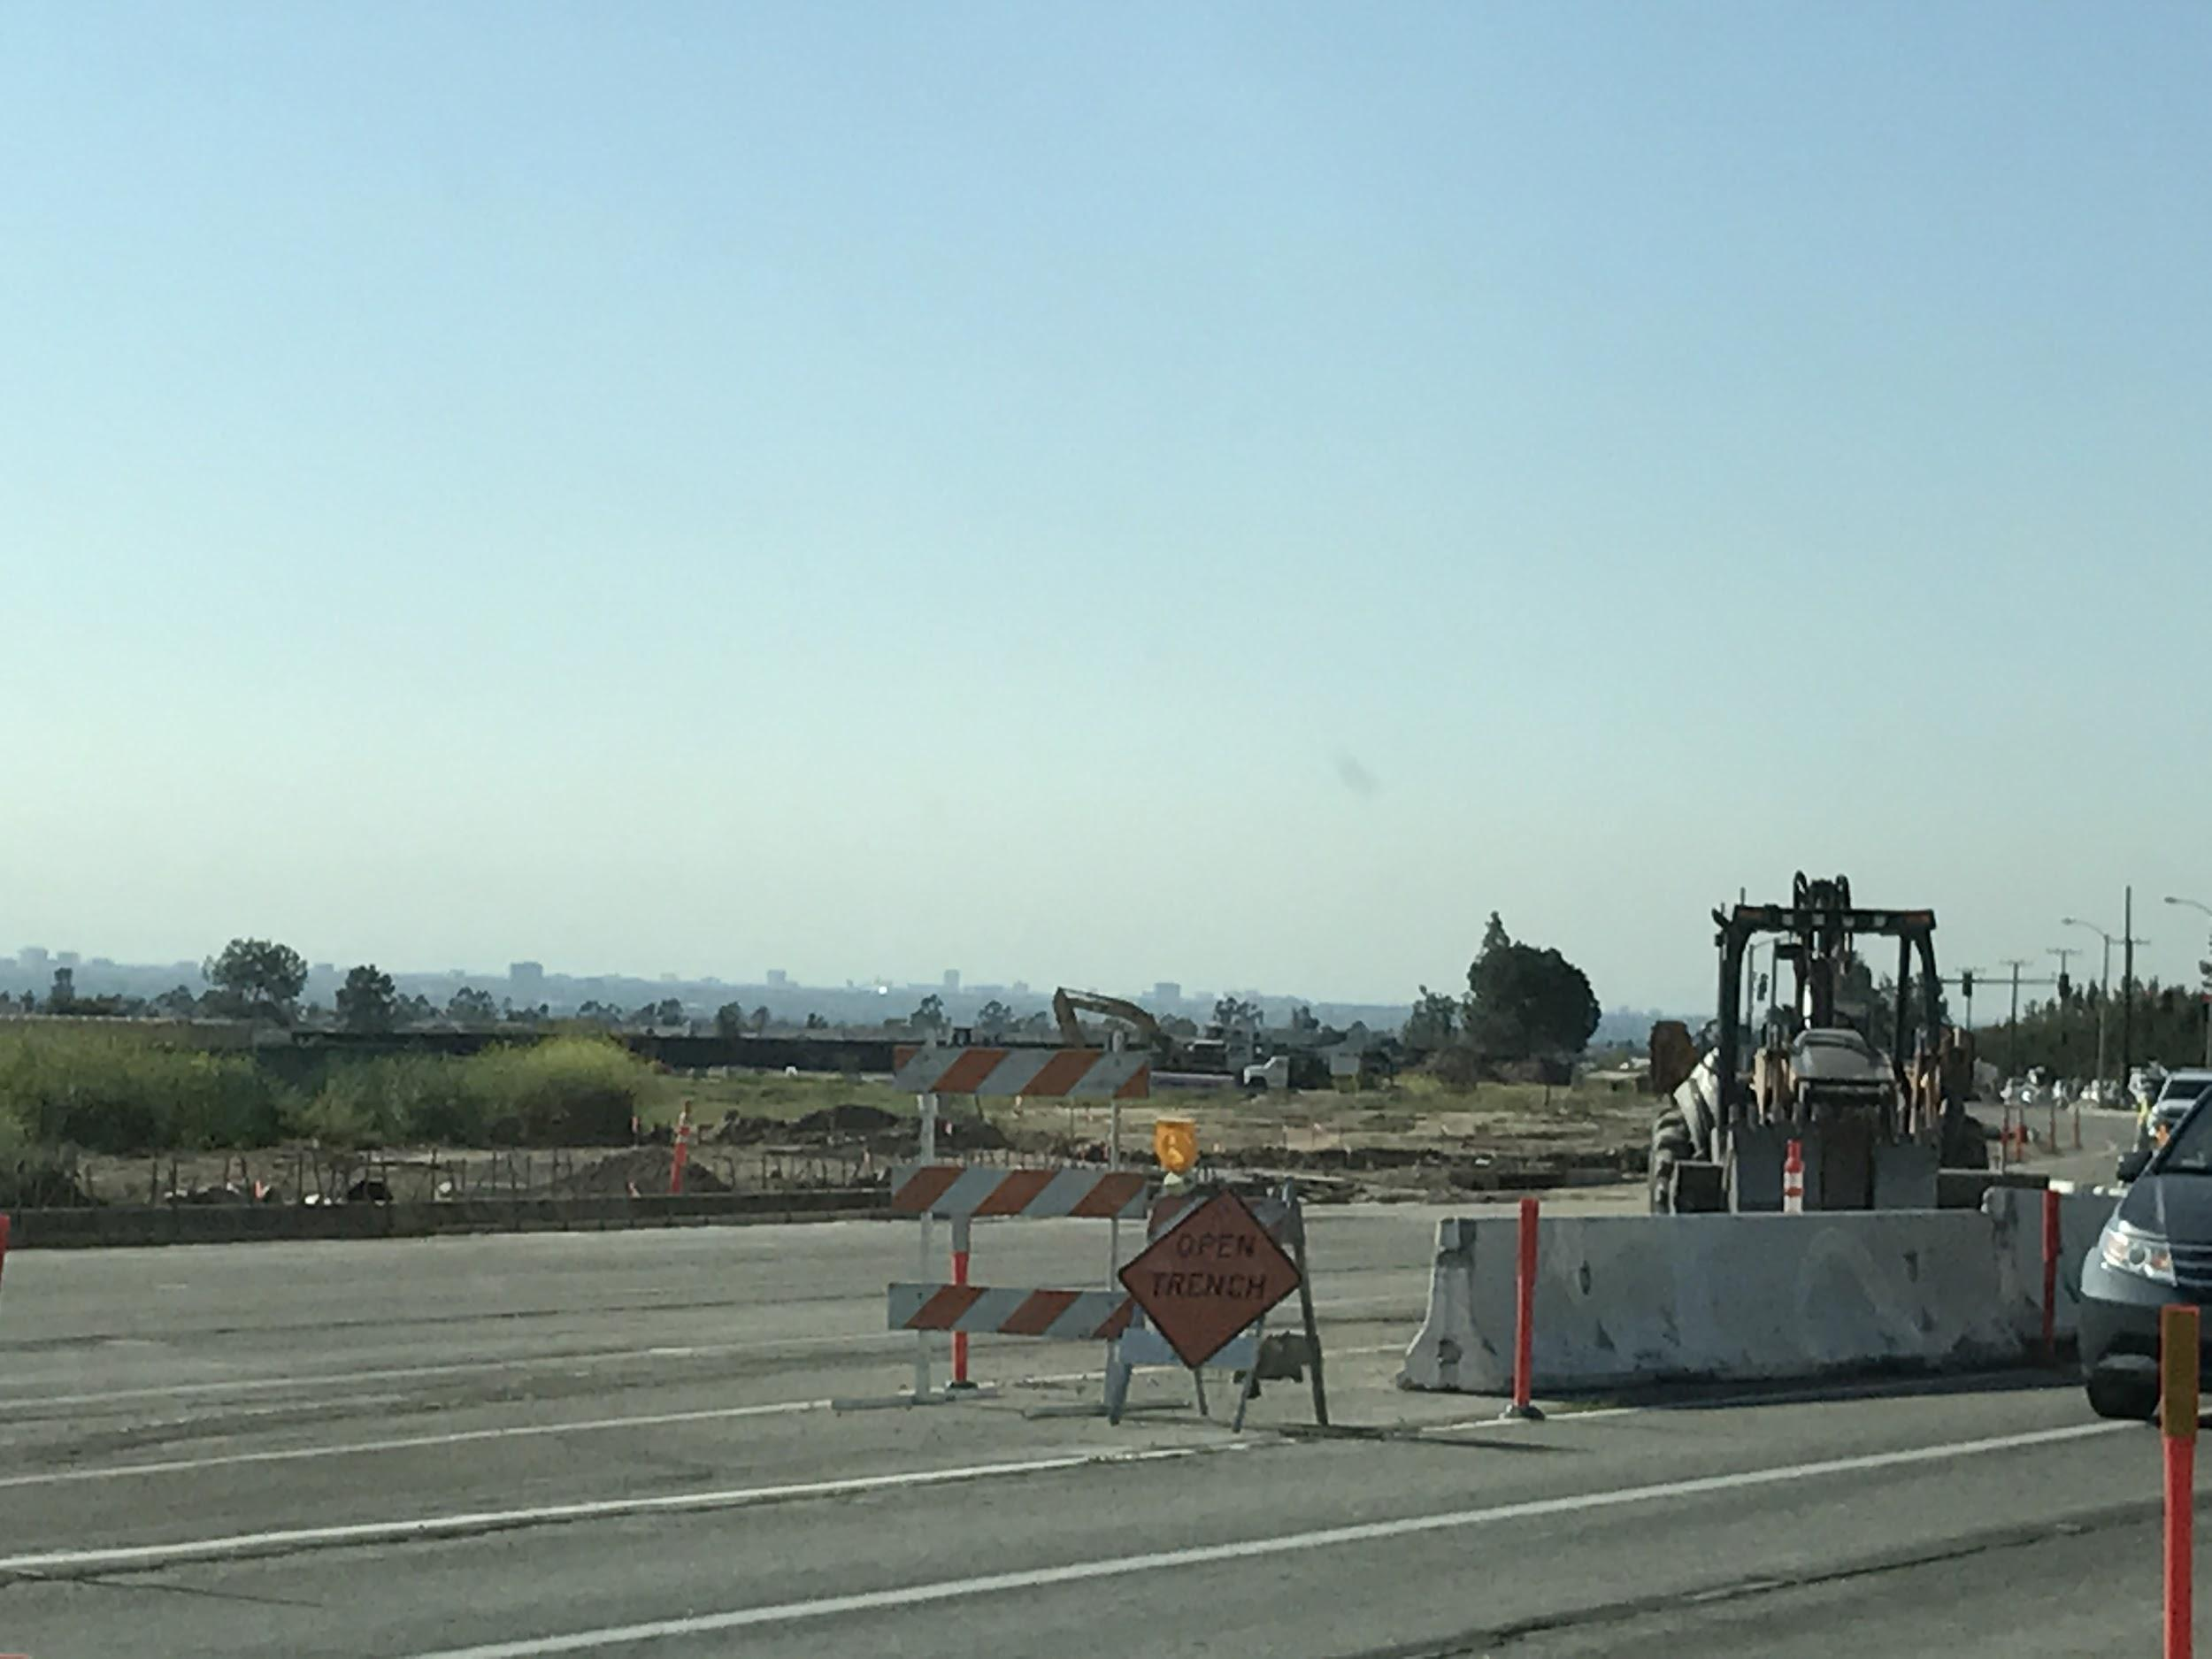 Irvine Boulevard has been under construction for several months.